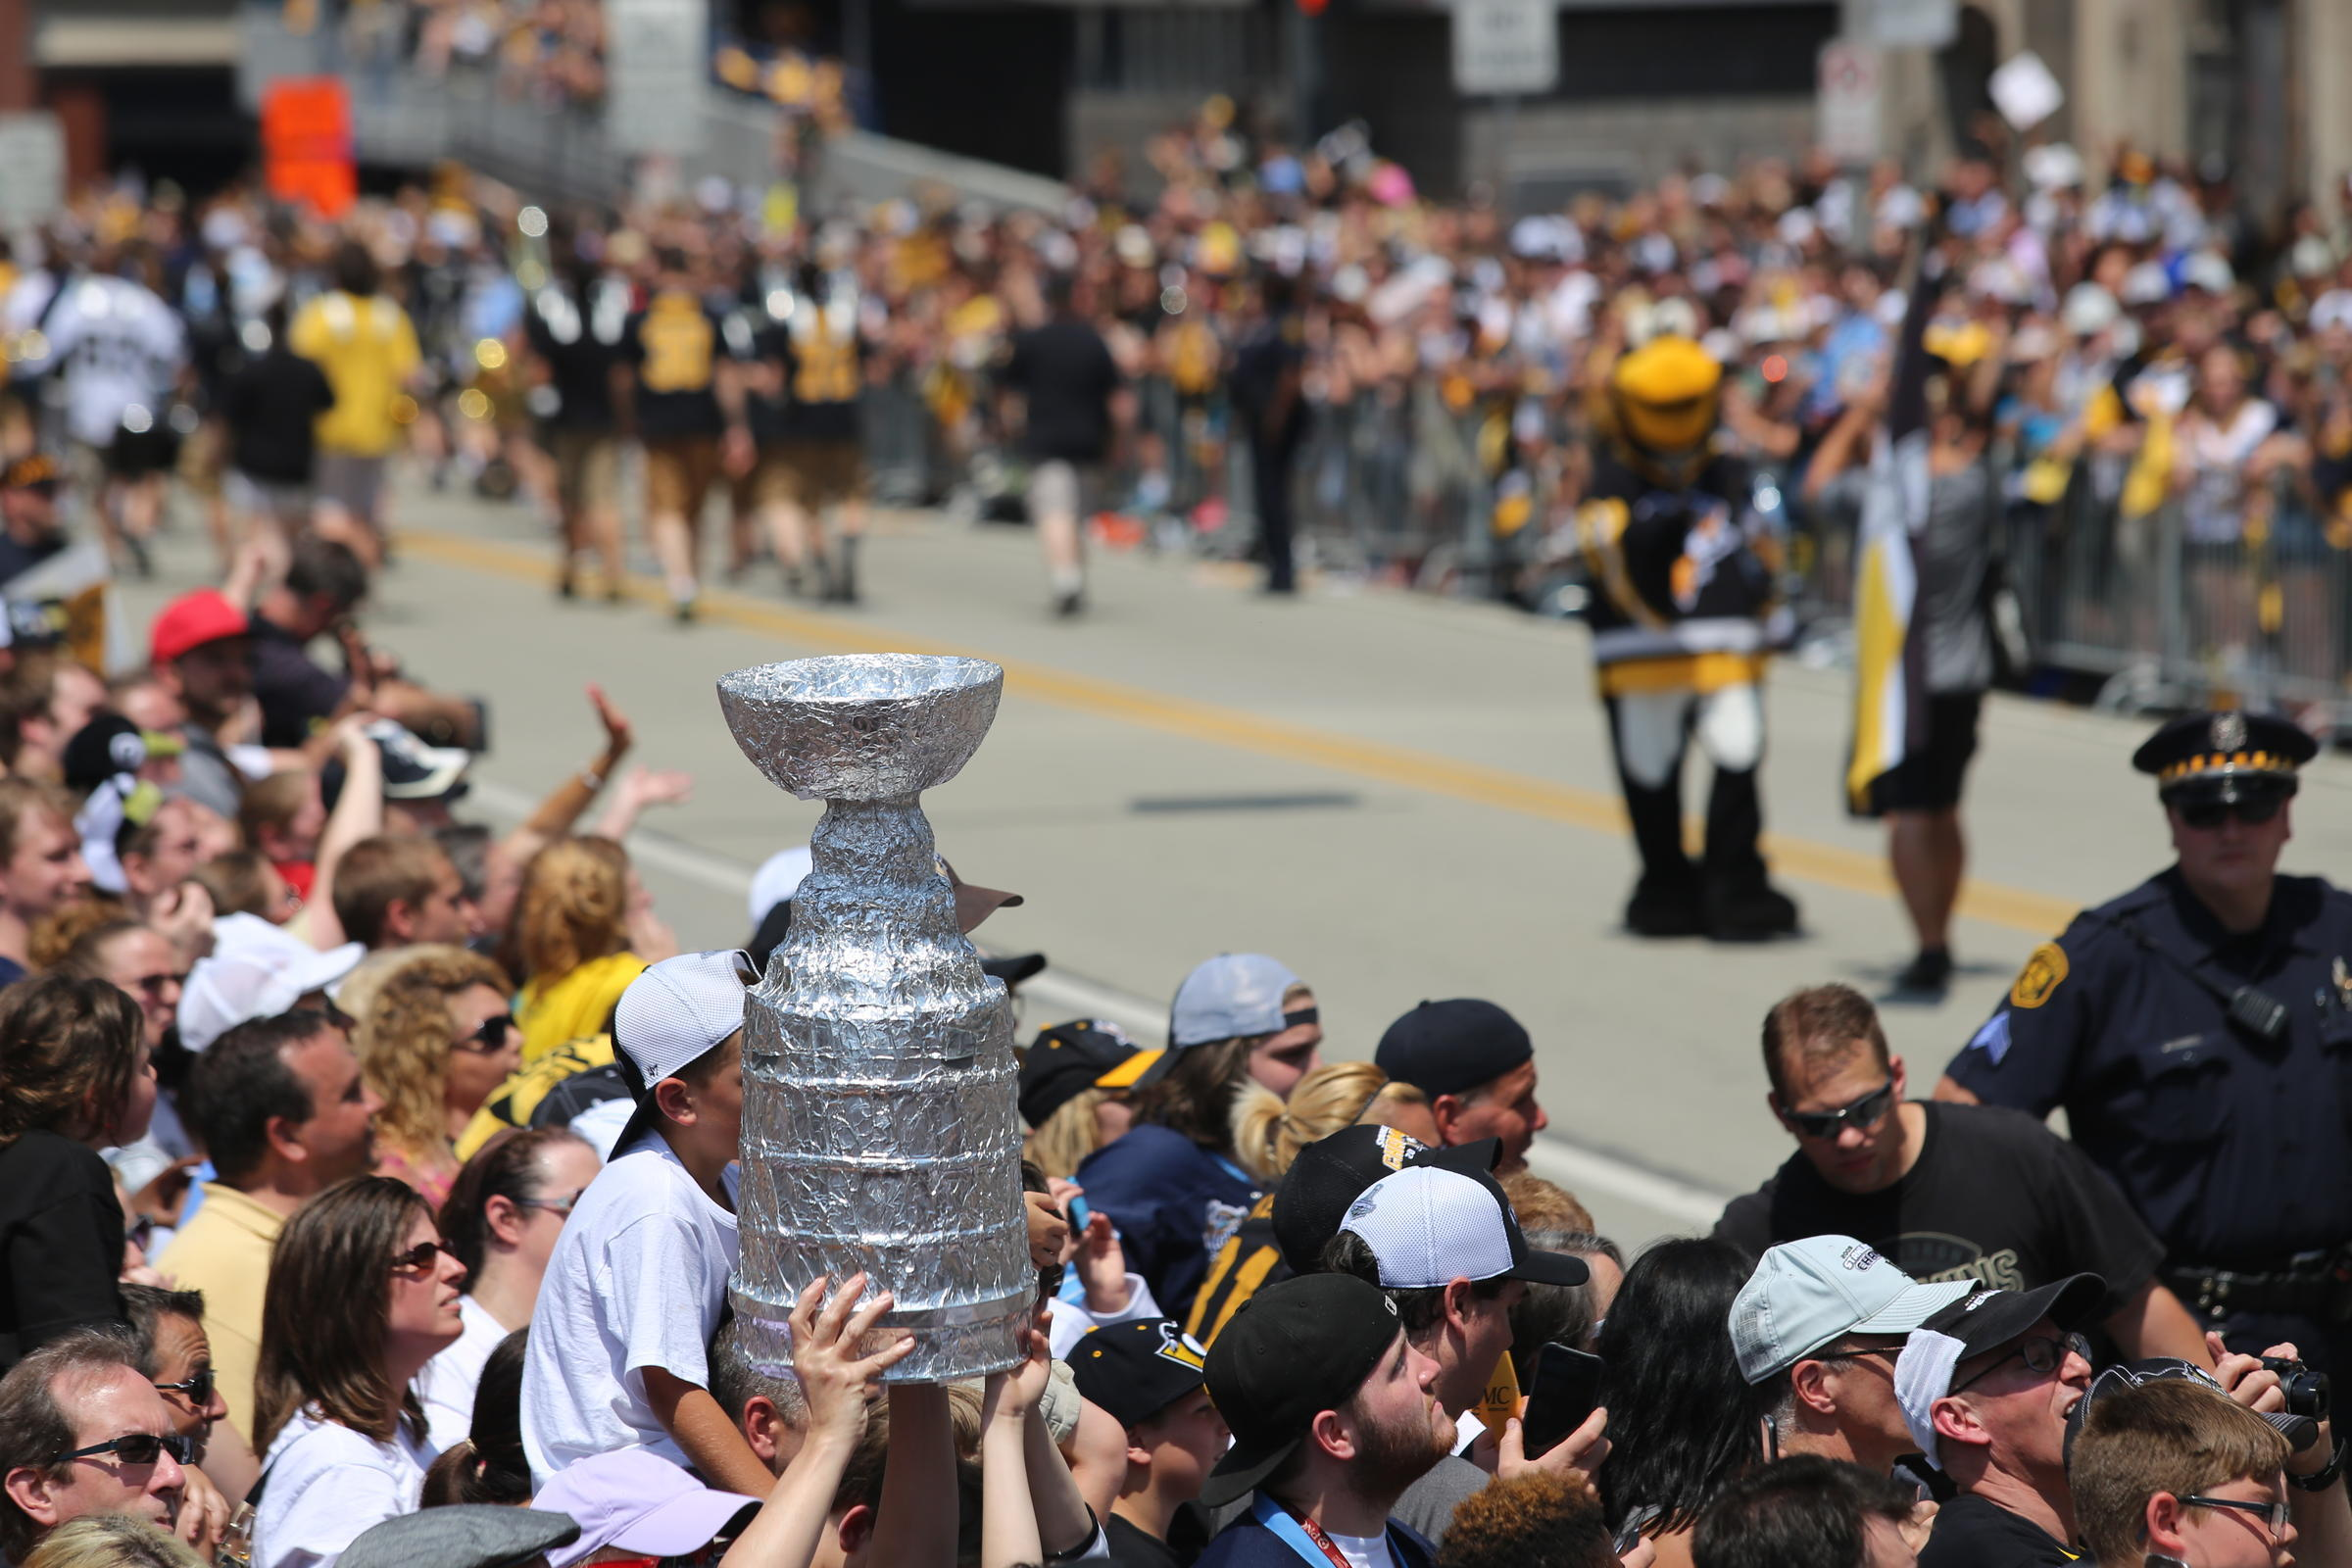 Mayor promises Stanley Cup parade, but plans unclear so far